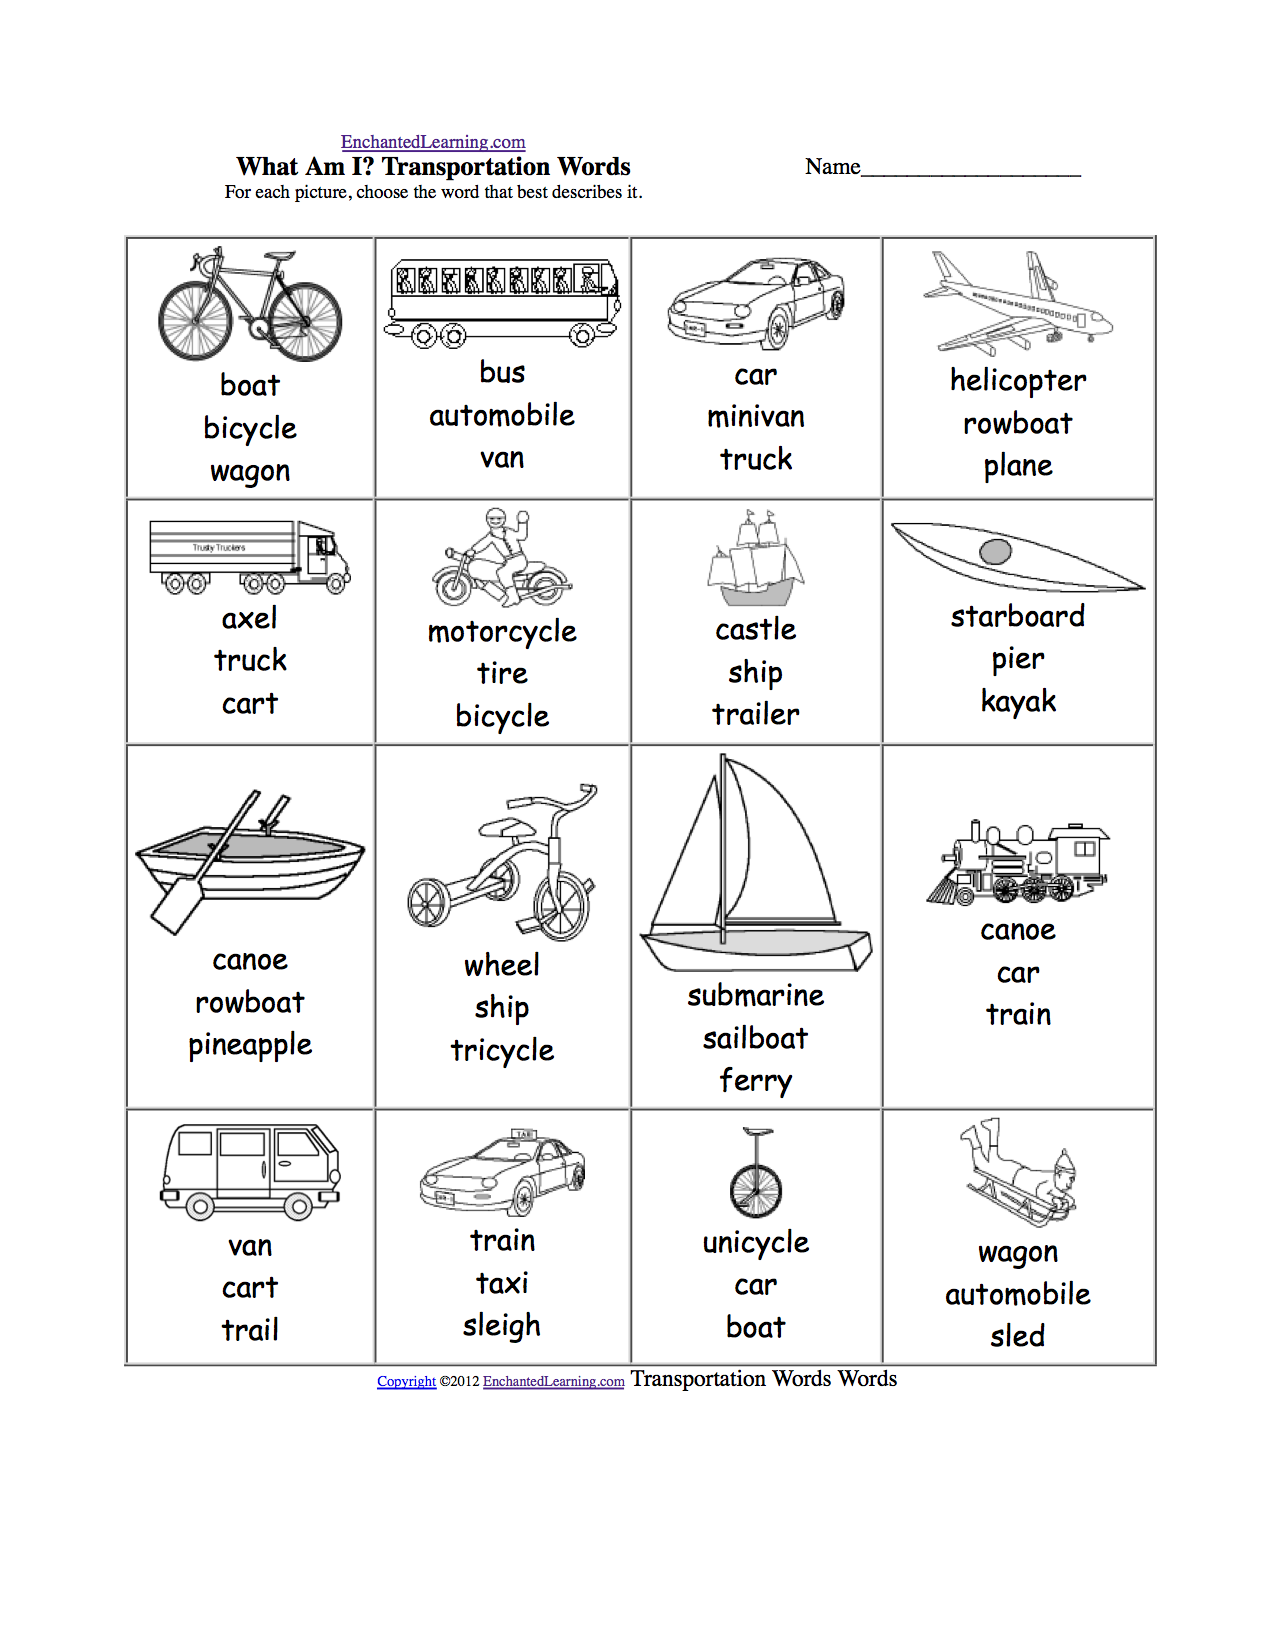 spelling worksheets transportation vehicles at enchantedlearning com